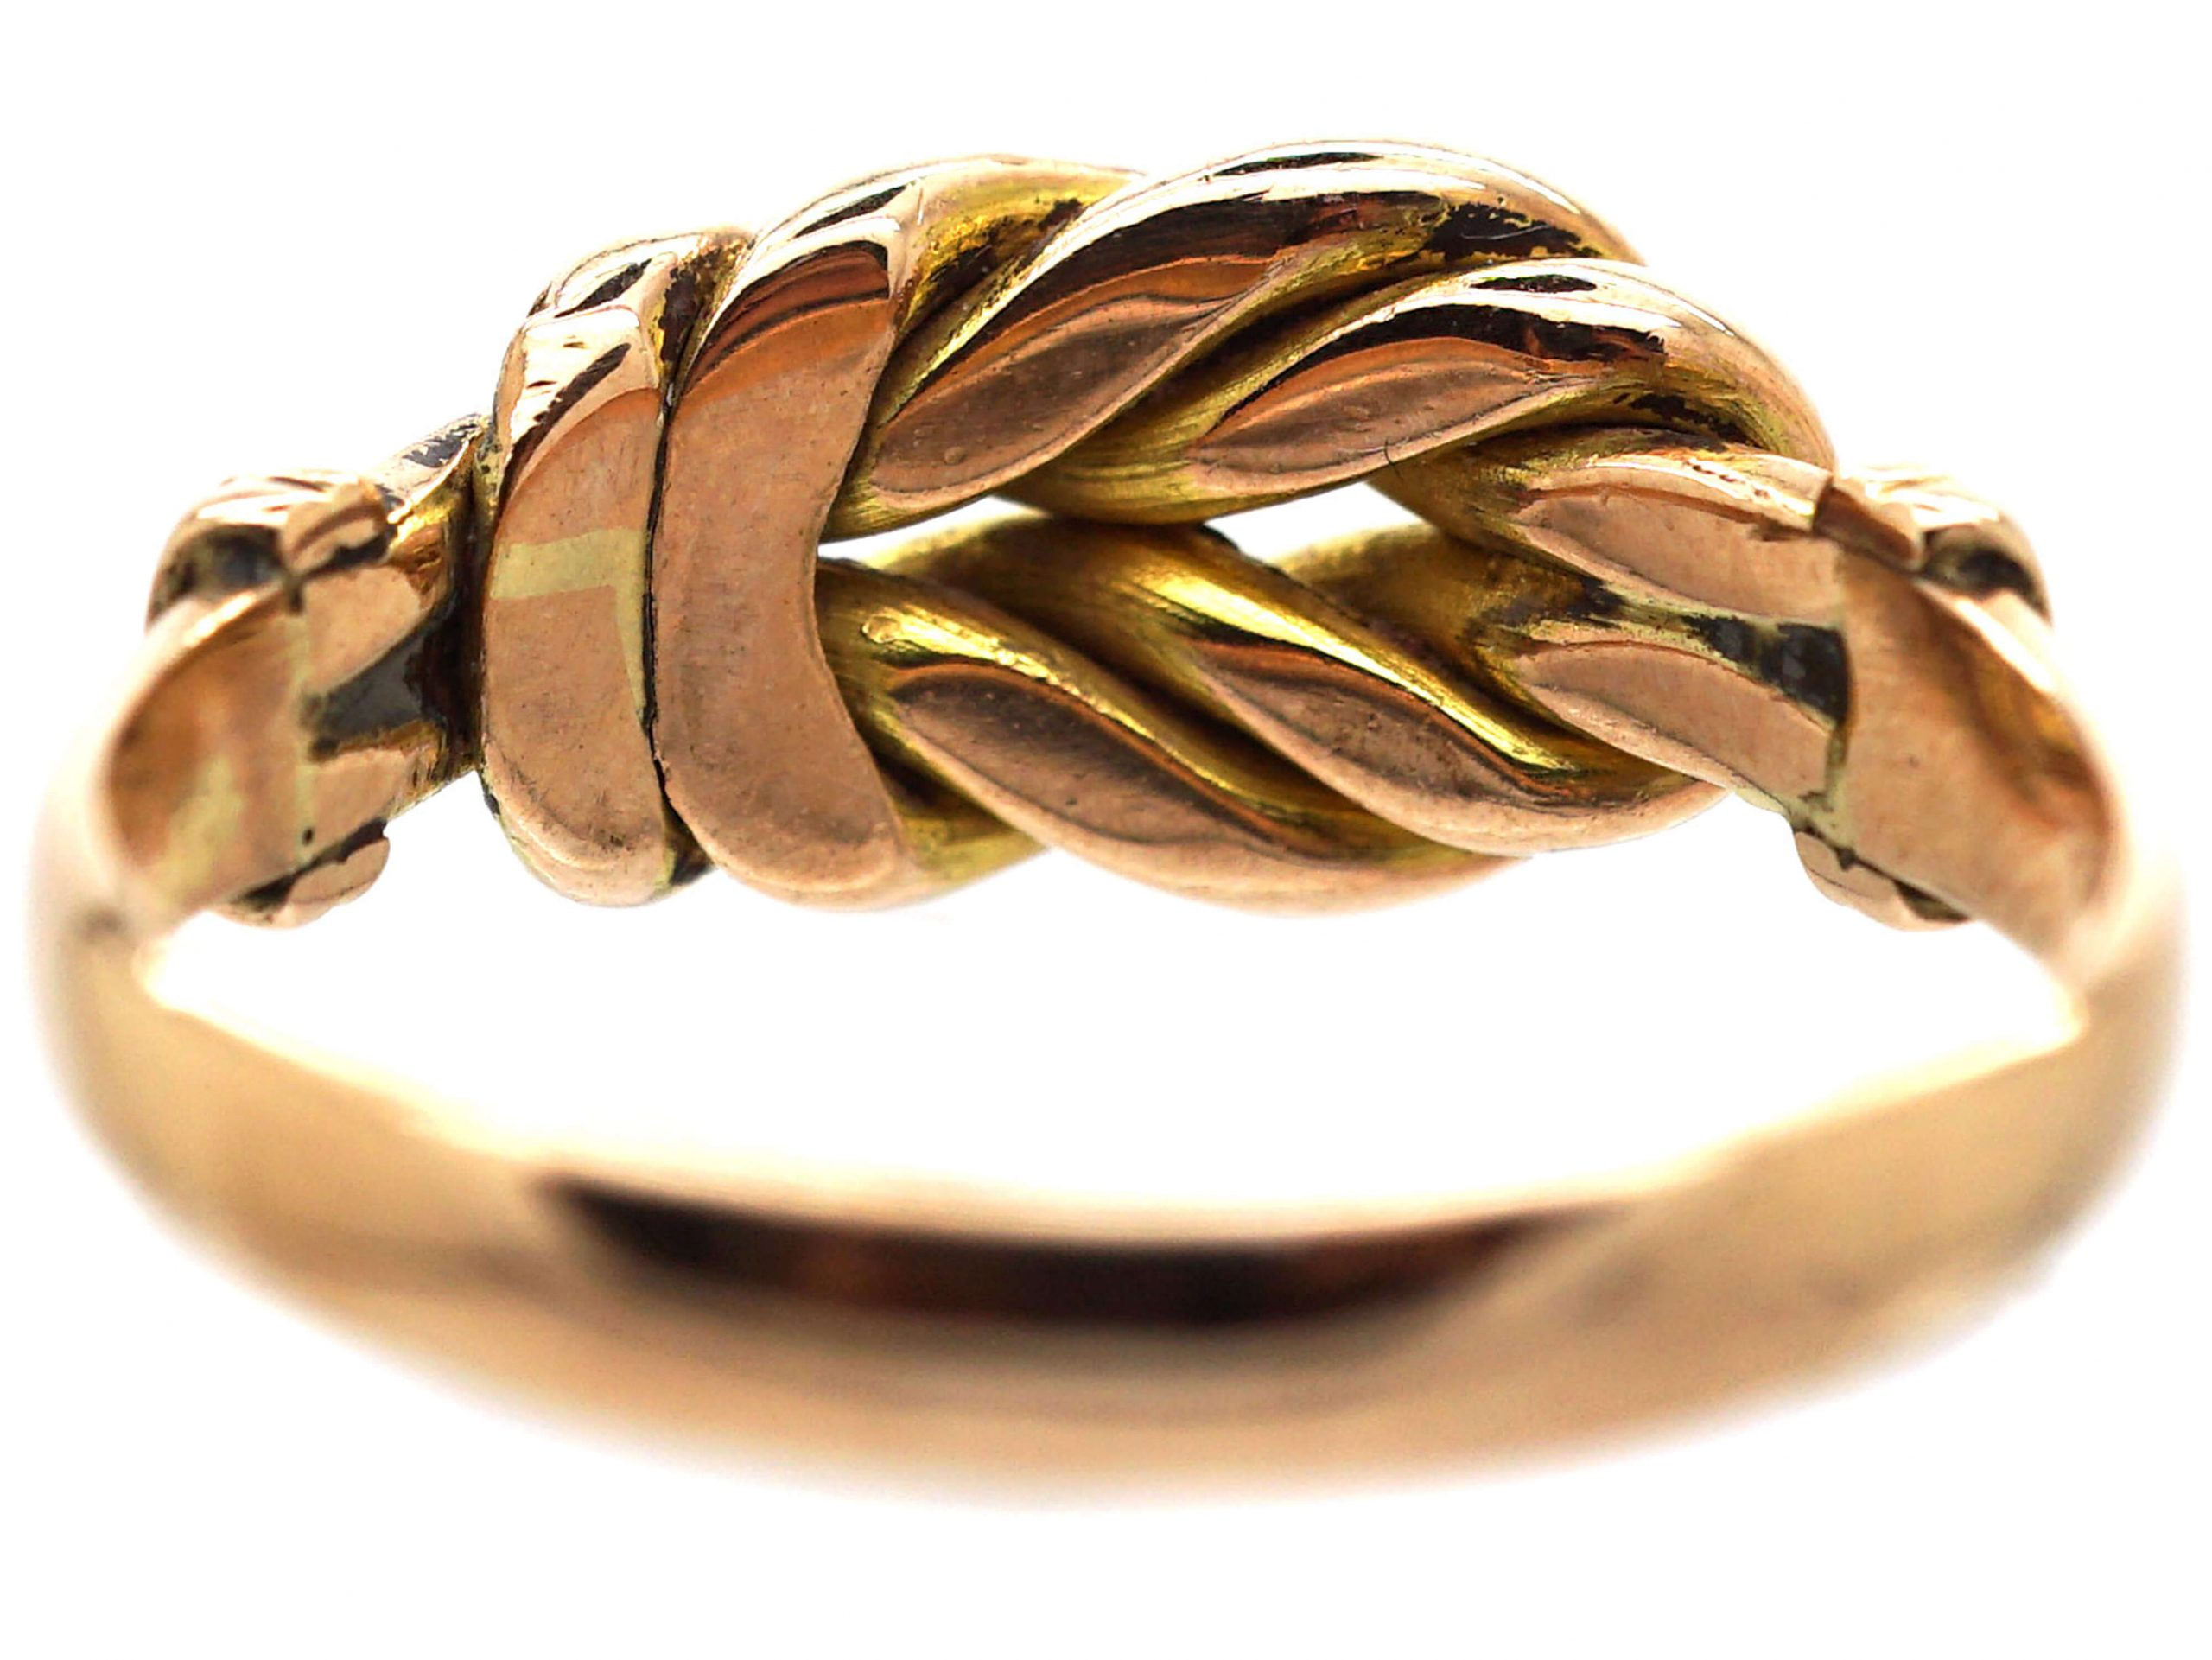 Edwardian 9ct Gold Knot Ring with Plain & Engraved Detail